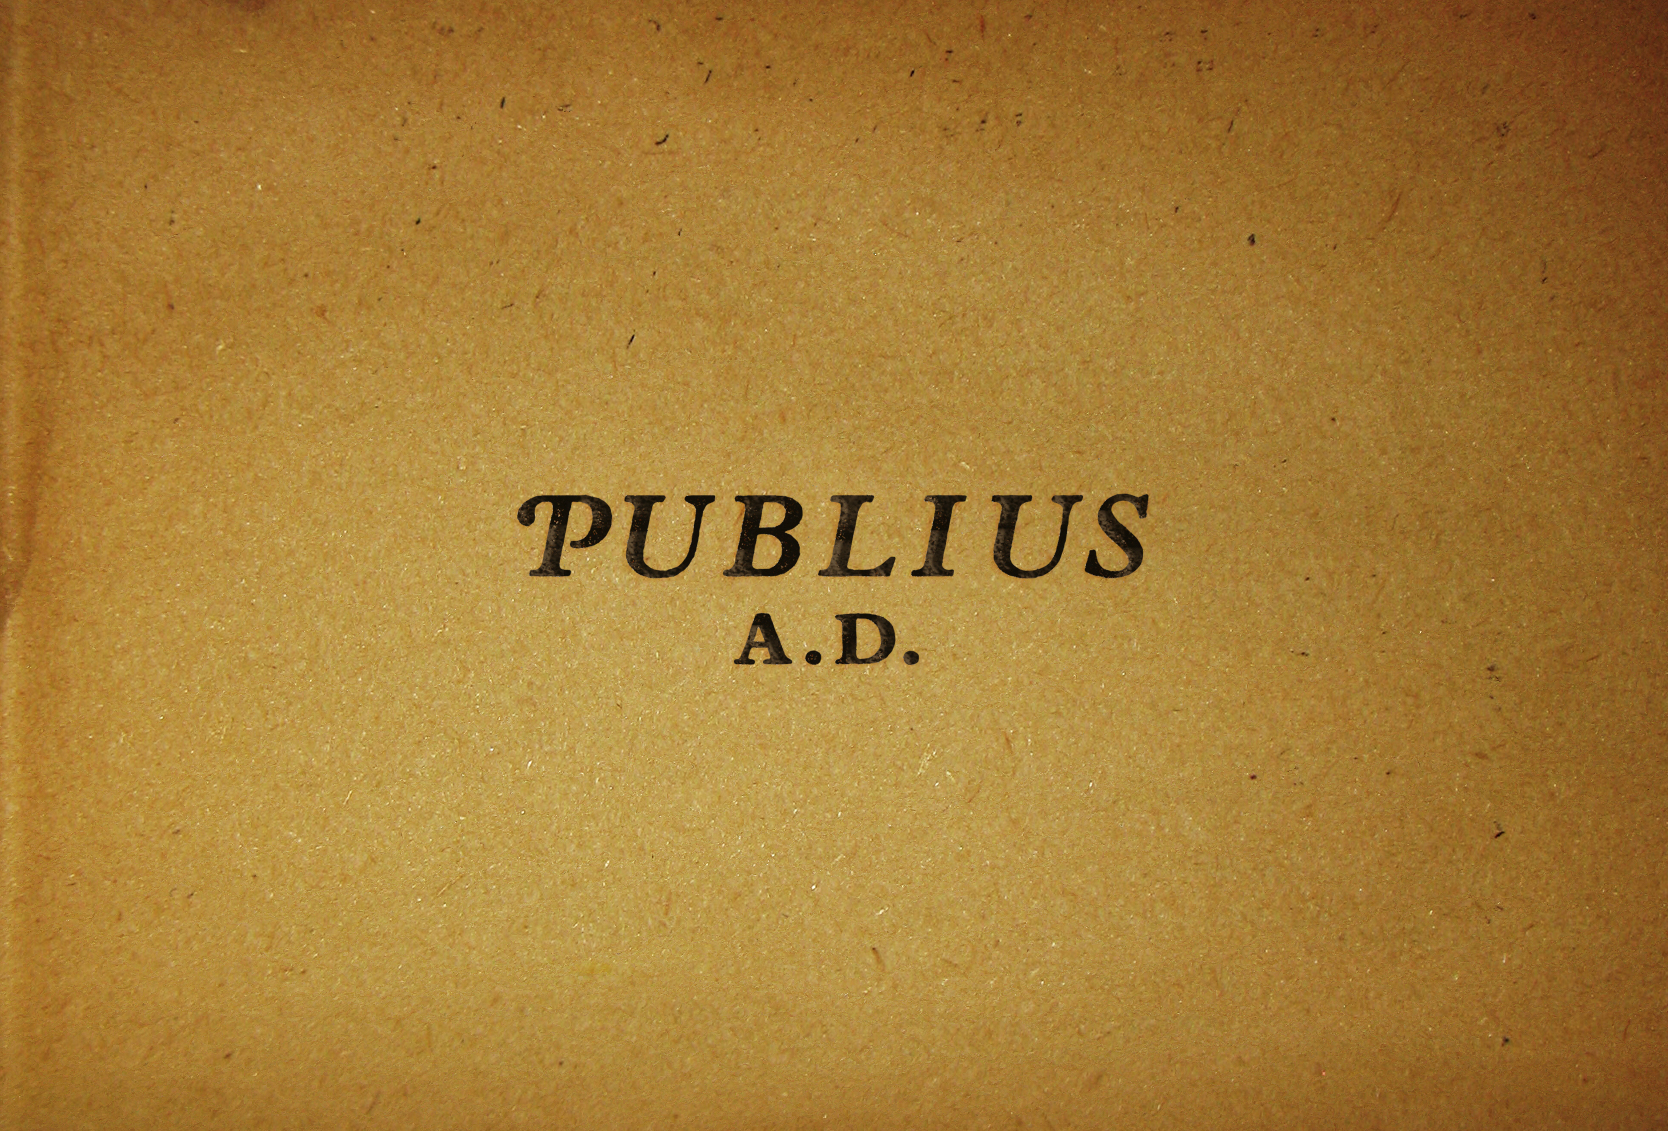 Publius A.D. was a concept for a political blog that would discuss current American politics through the lense of the Federalist Papers. The logotype and treatment was inspired by the printing of the papers themselves.